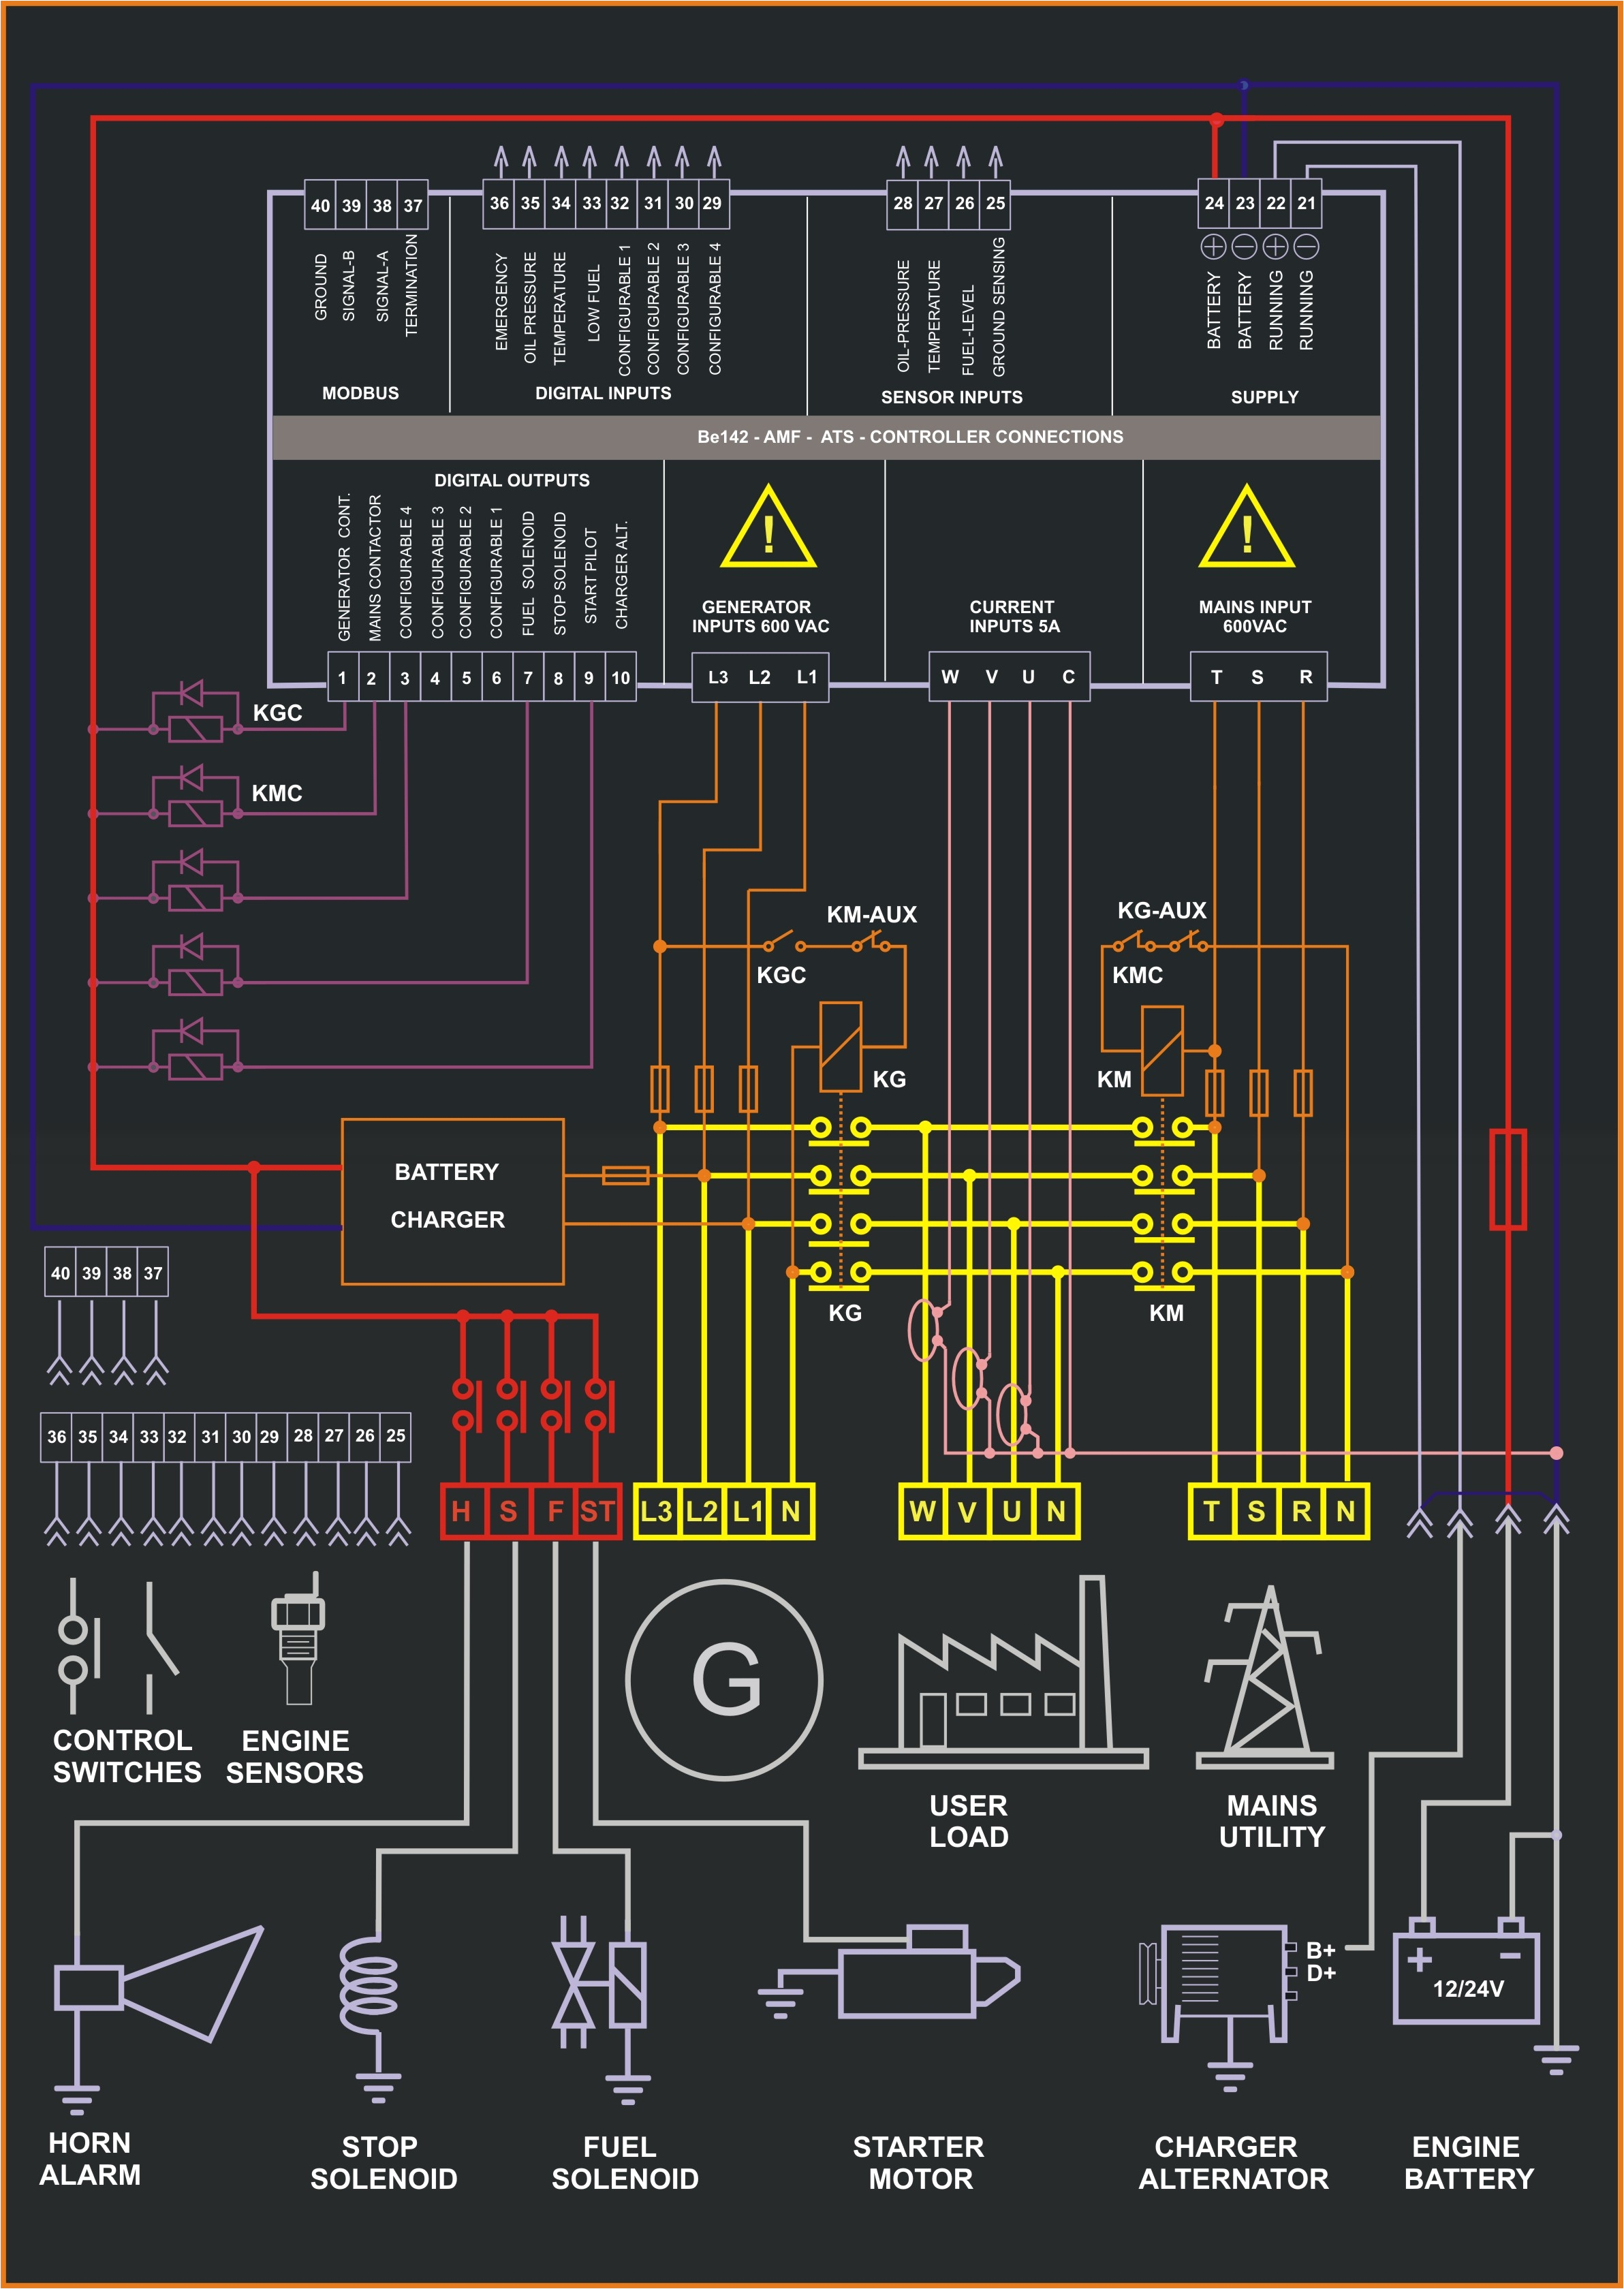 generator control panel wiring diagram home wiring diagram fg wilson generator control panel wiring diagram generator control panel wiring diagram